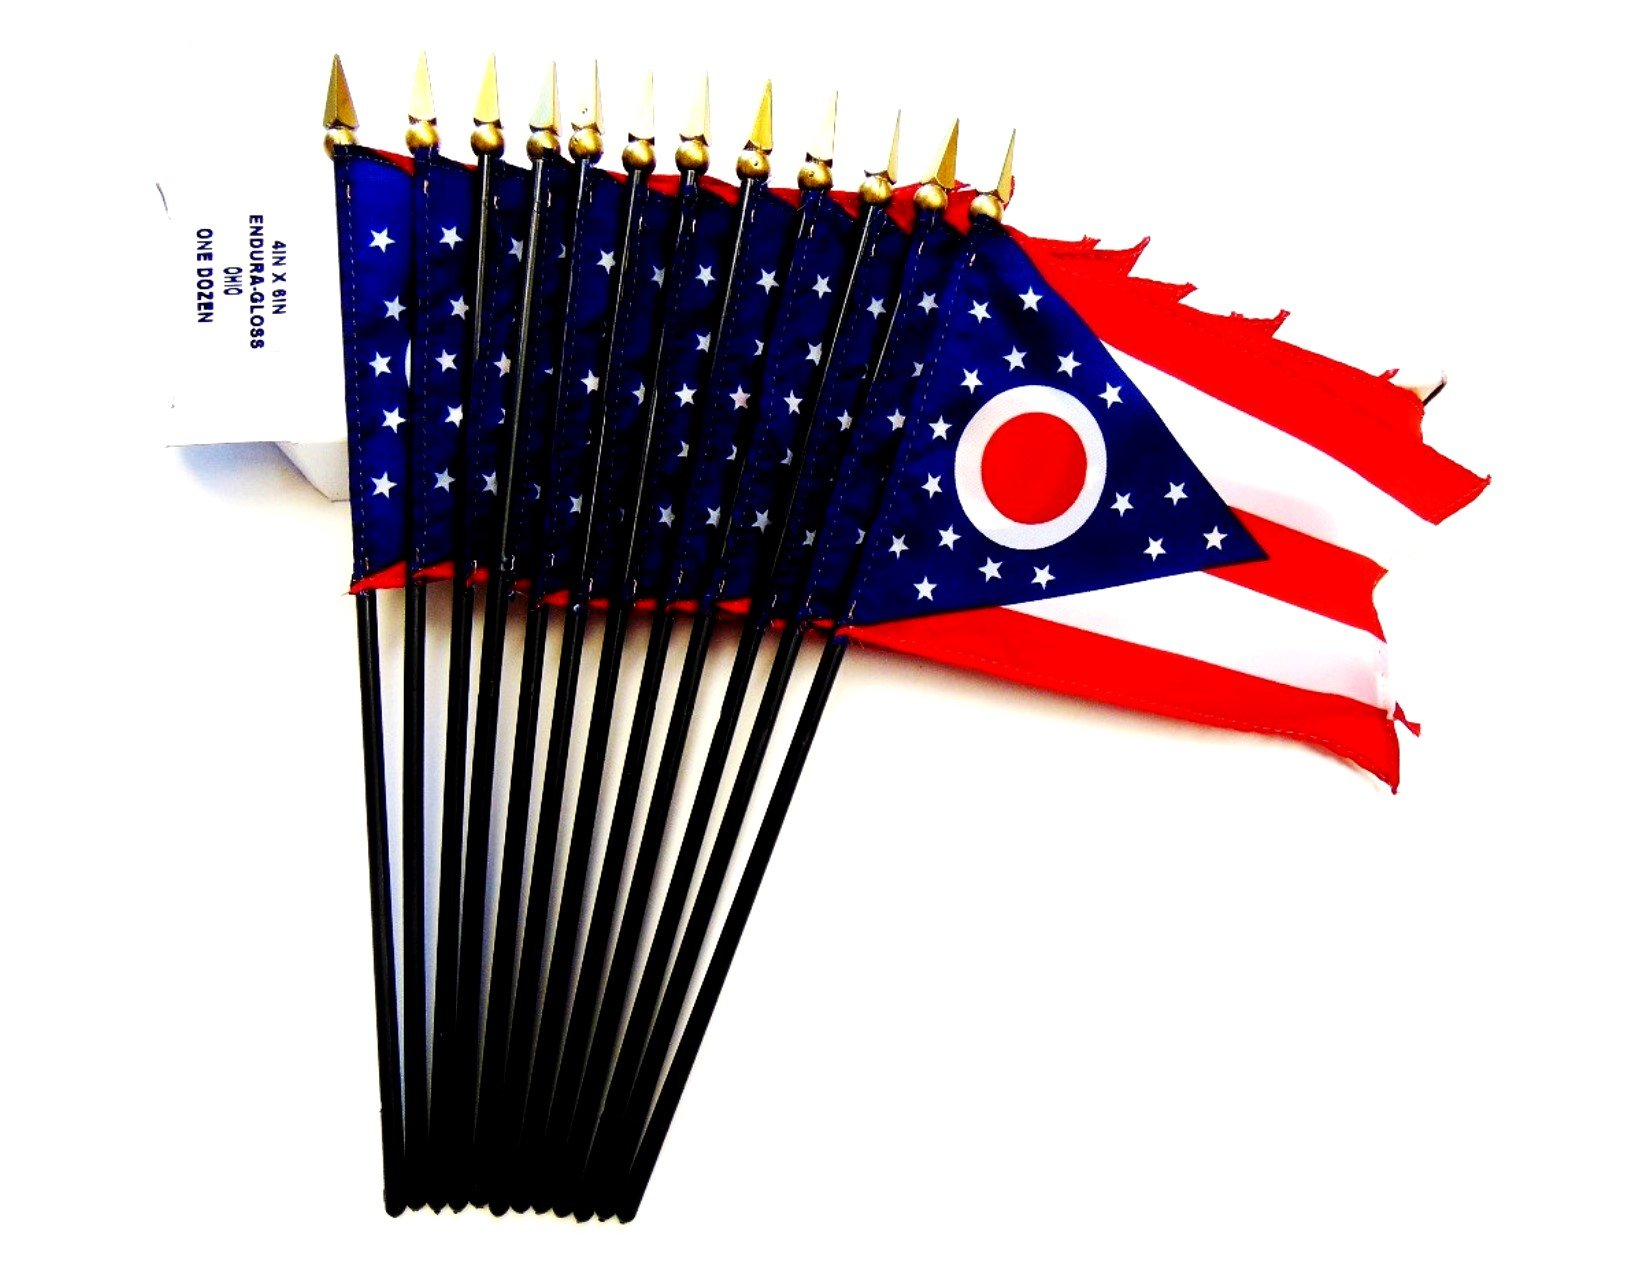 MADE IN USA!! Box of 12 Ohio 4''x6'' Miniature Desk & Table Flags; 12 American Made Small Mini Ohio State Flags in a Custom Made Cardboard Box Specifically Made for These Flags